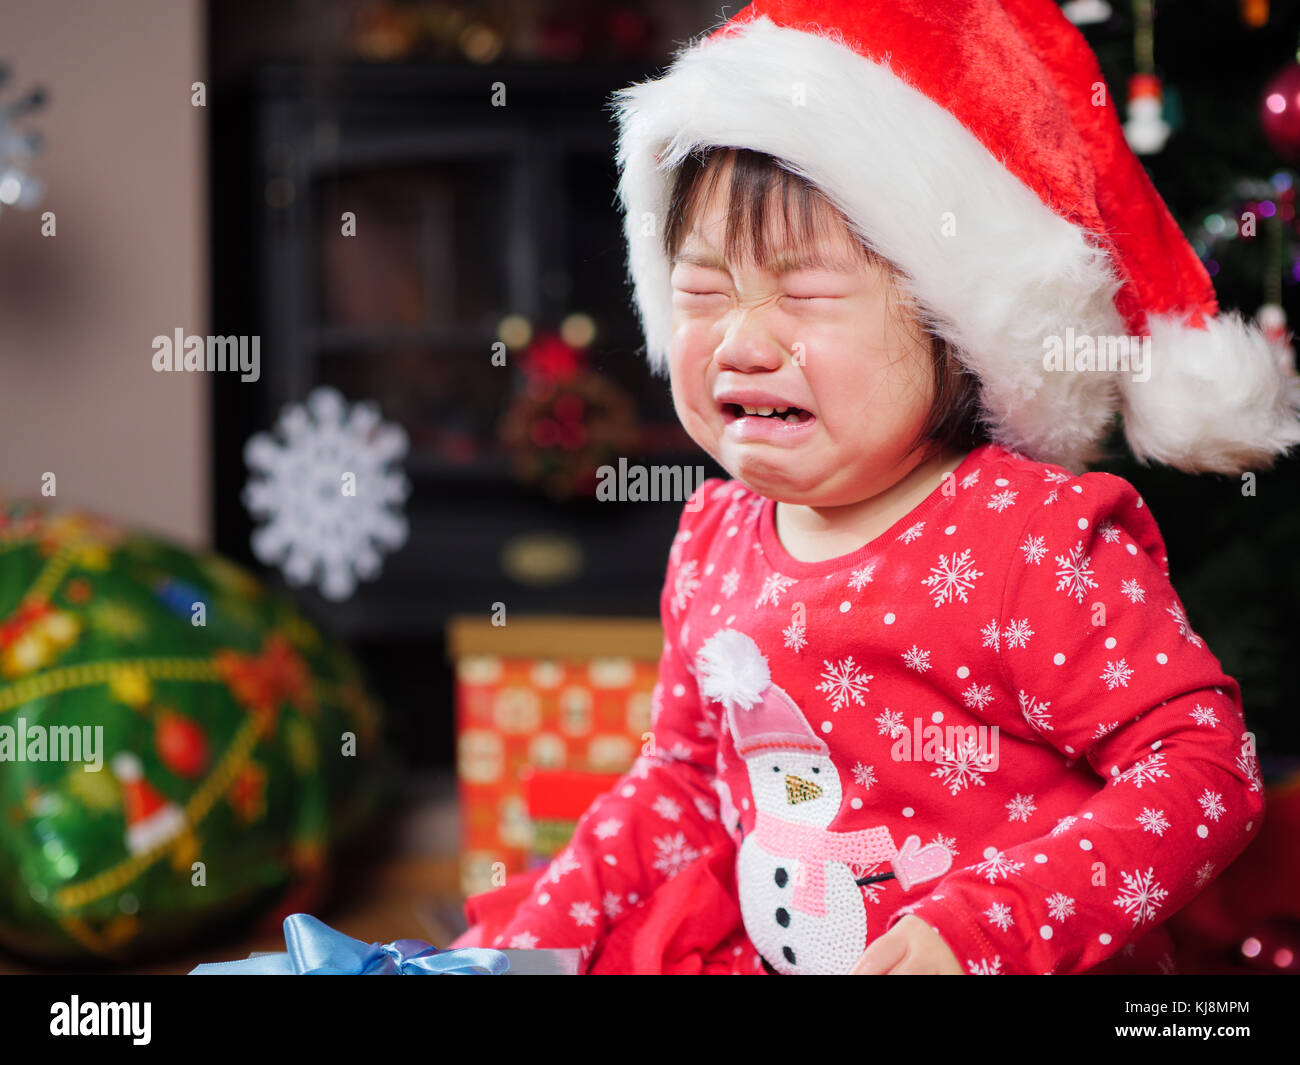 crying baby girl missing her christmas gift Stock Photo